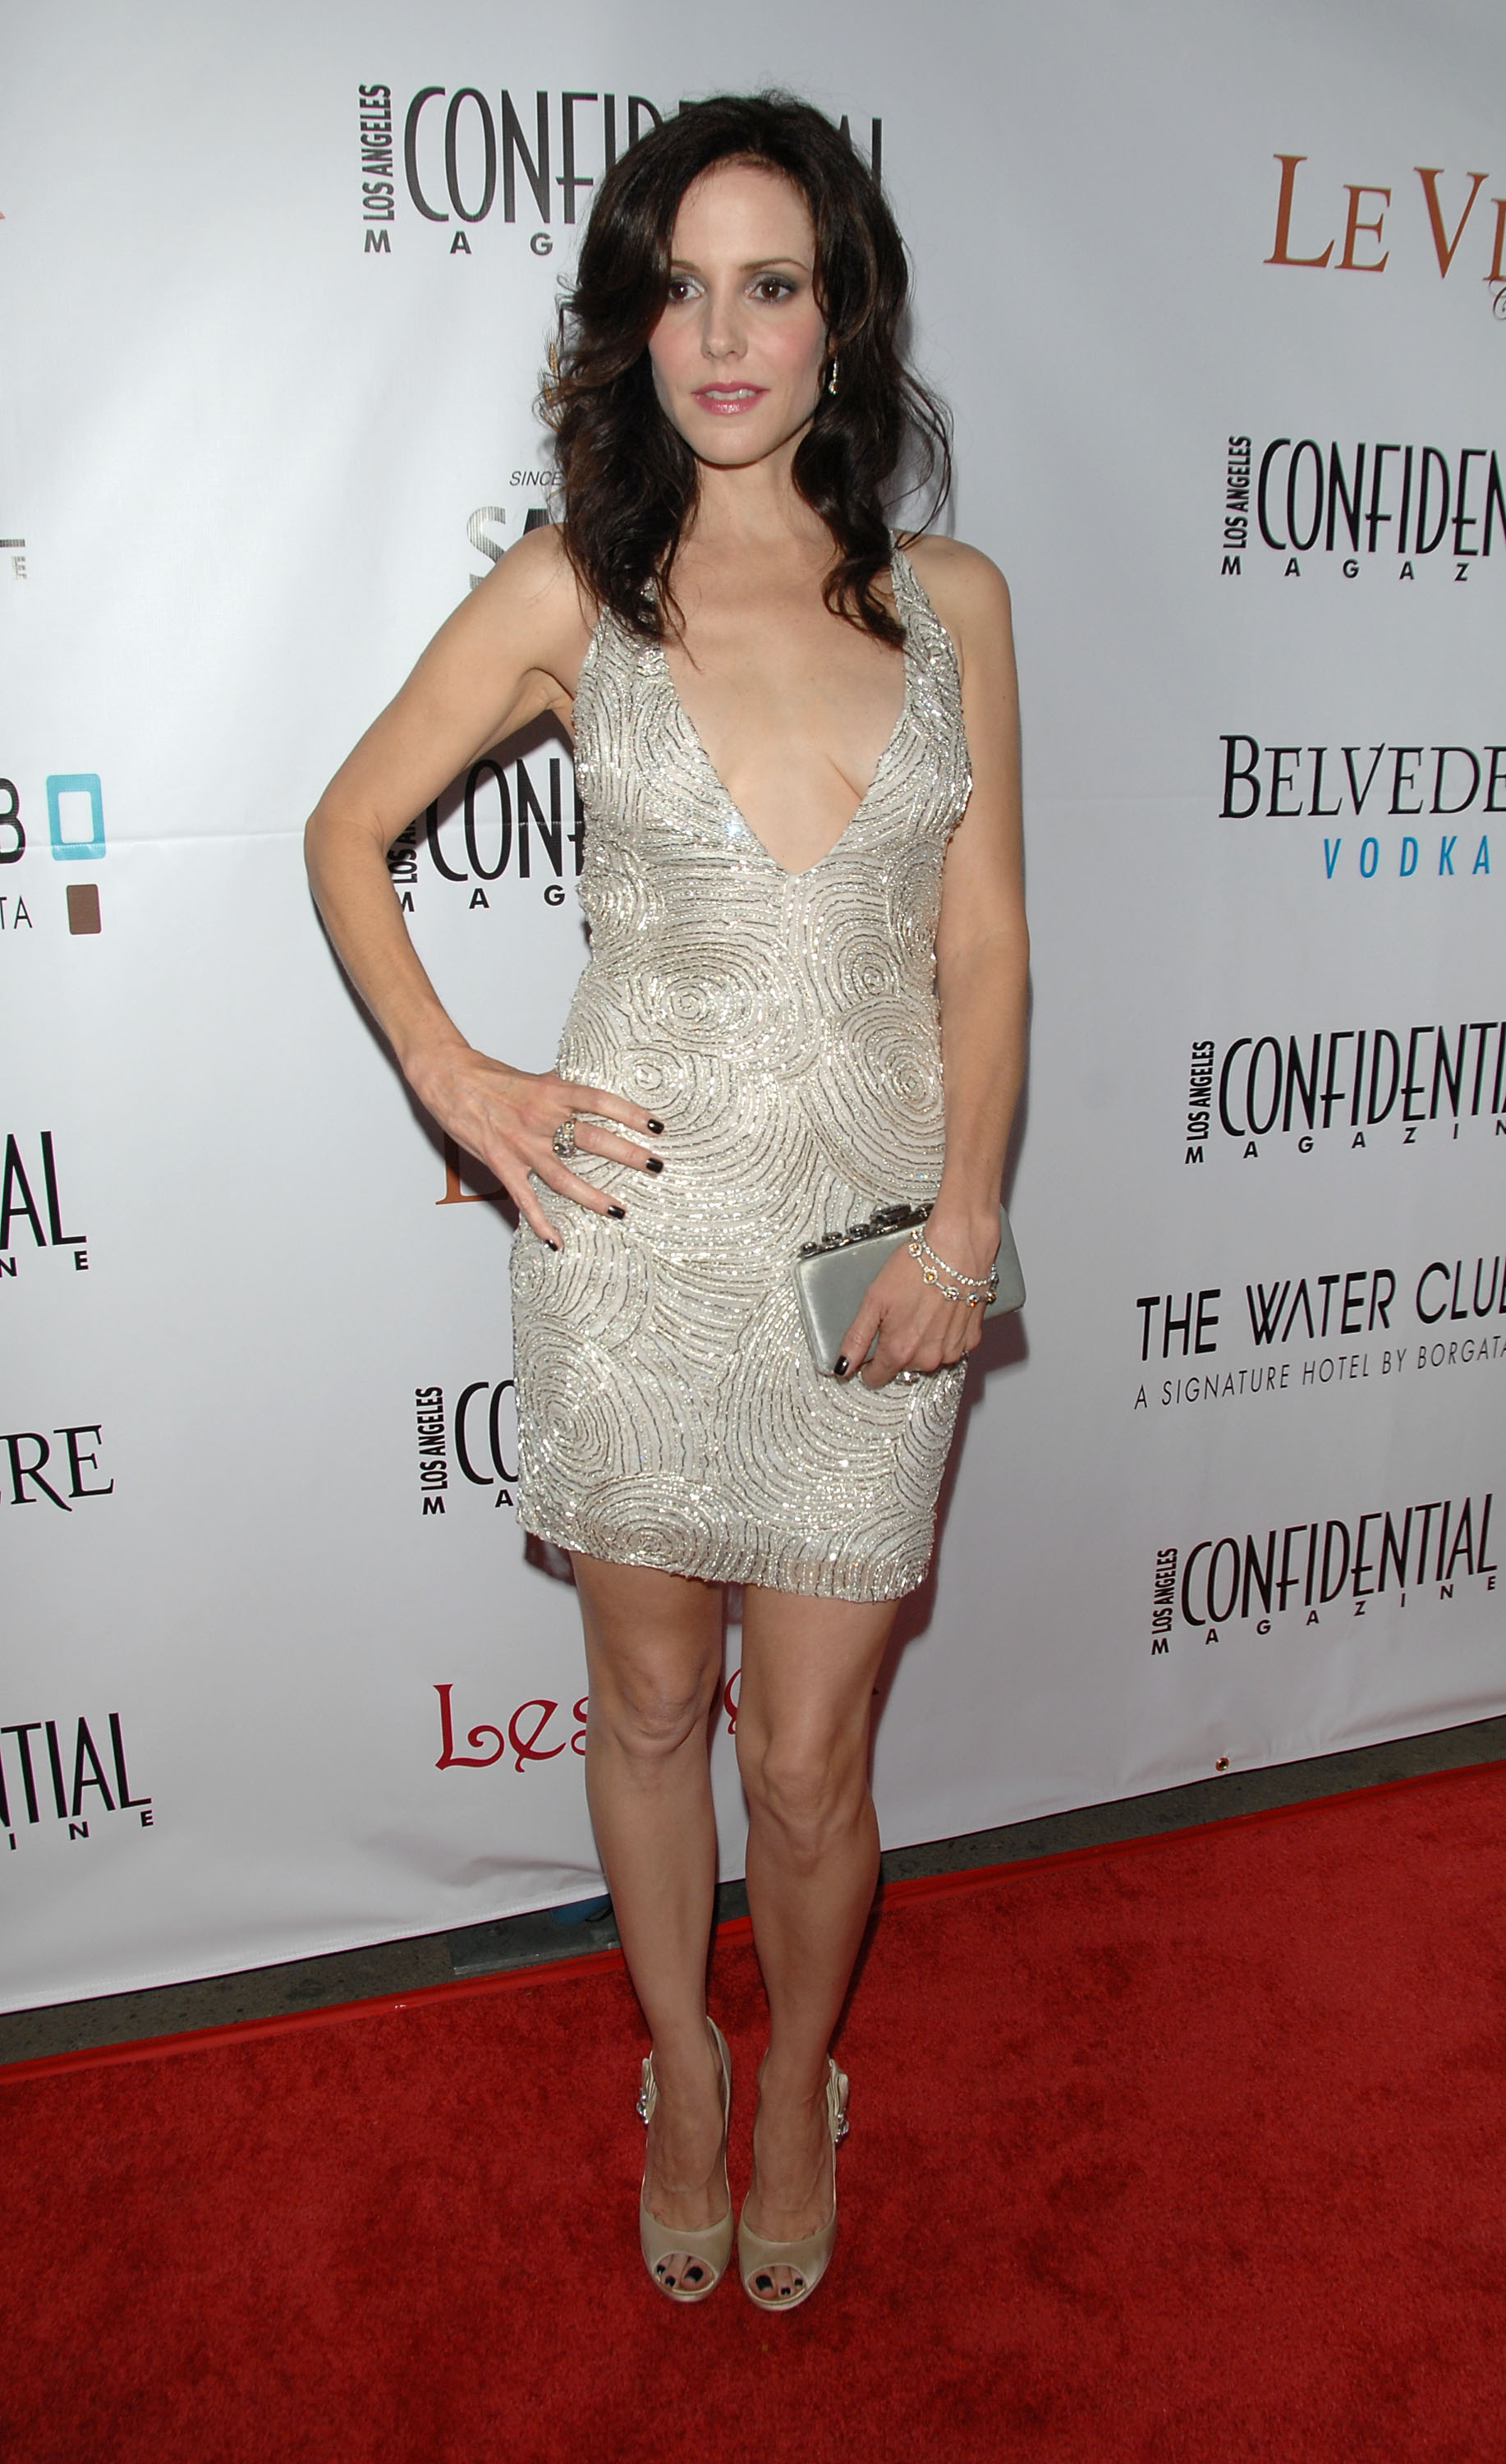 91543_Celebutopia-Mary-Louise_Parker-Los_Angeles_Confidential_Magazine6s_Pre-Emmy_Party-06_122_120lo.jpg